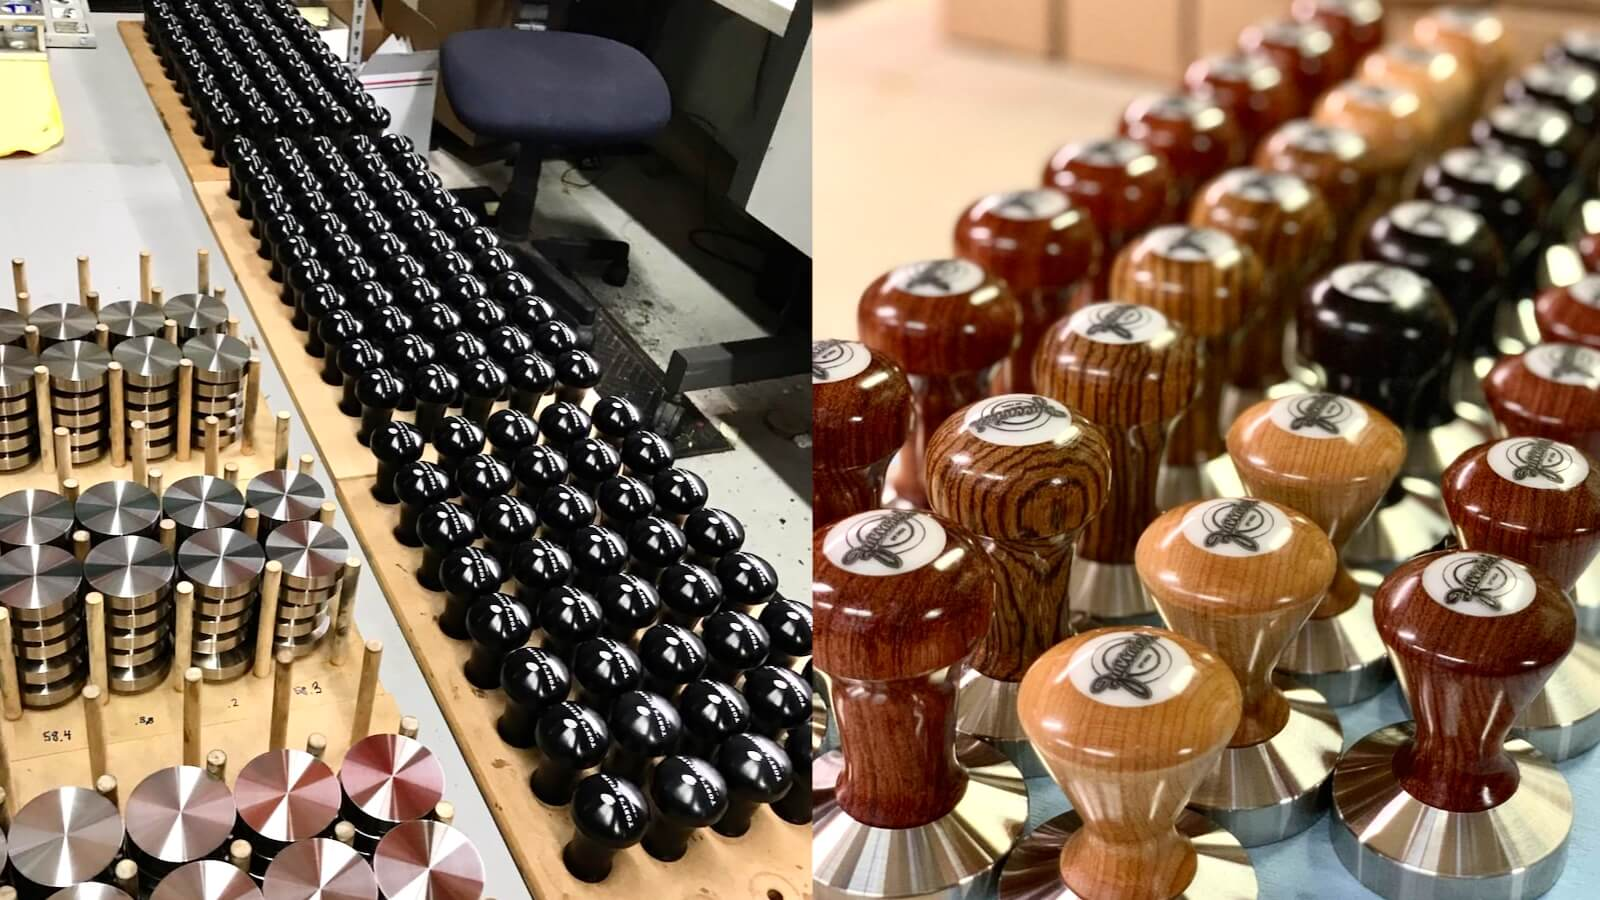 Tampers lined up at the Reg Barber factory